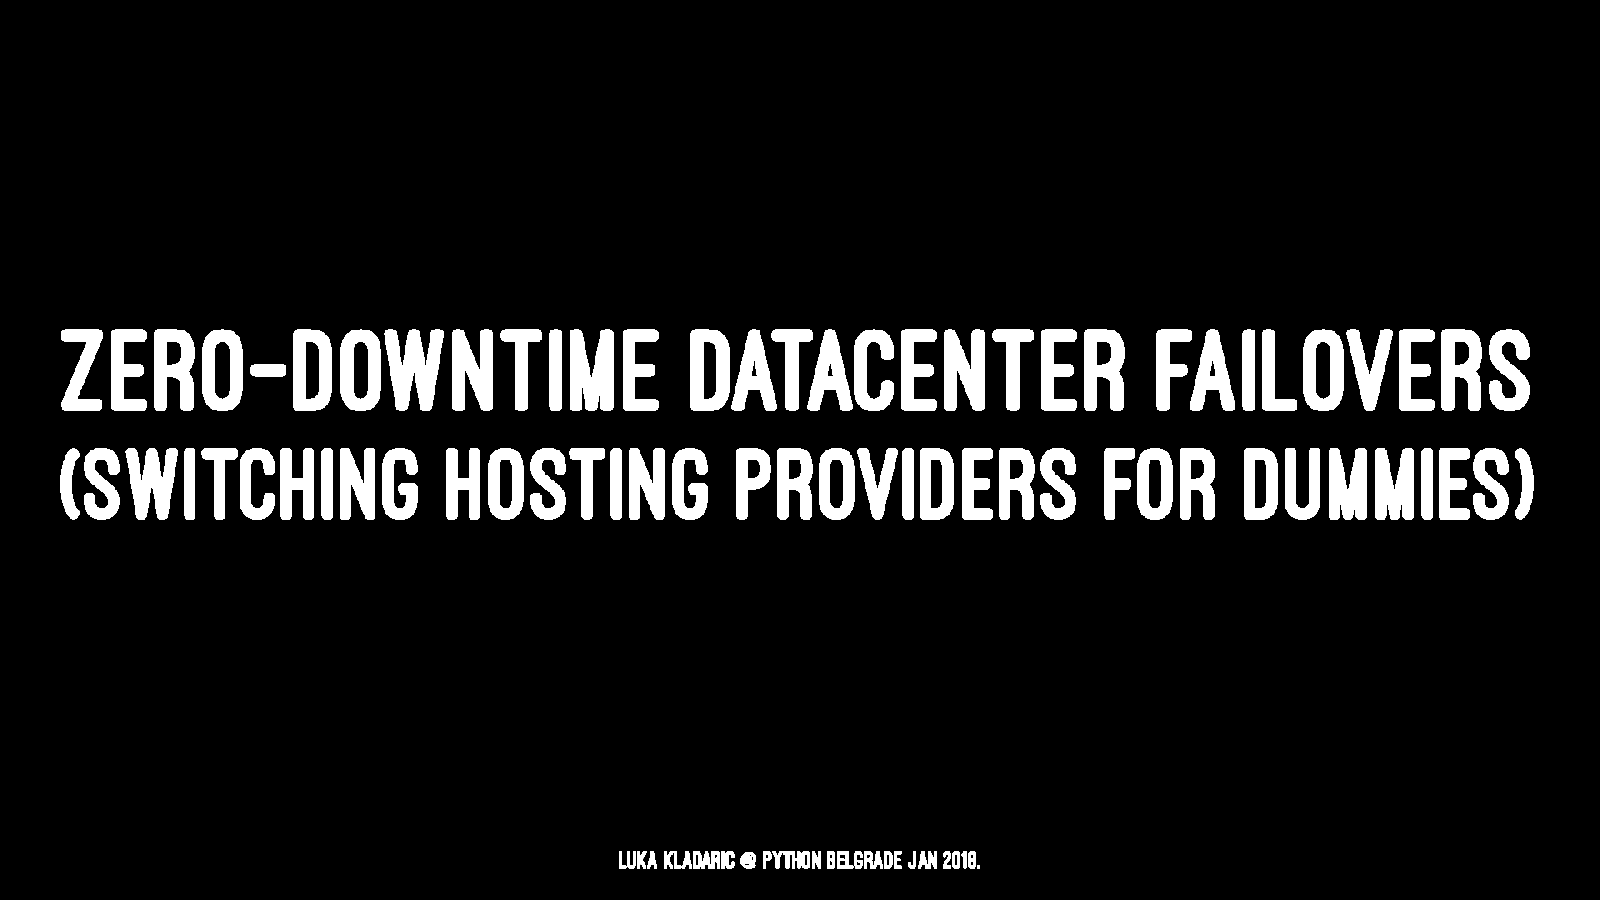 Zero-downtime datacenter failovers (Switching hosting providers for dummies)